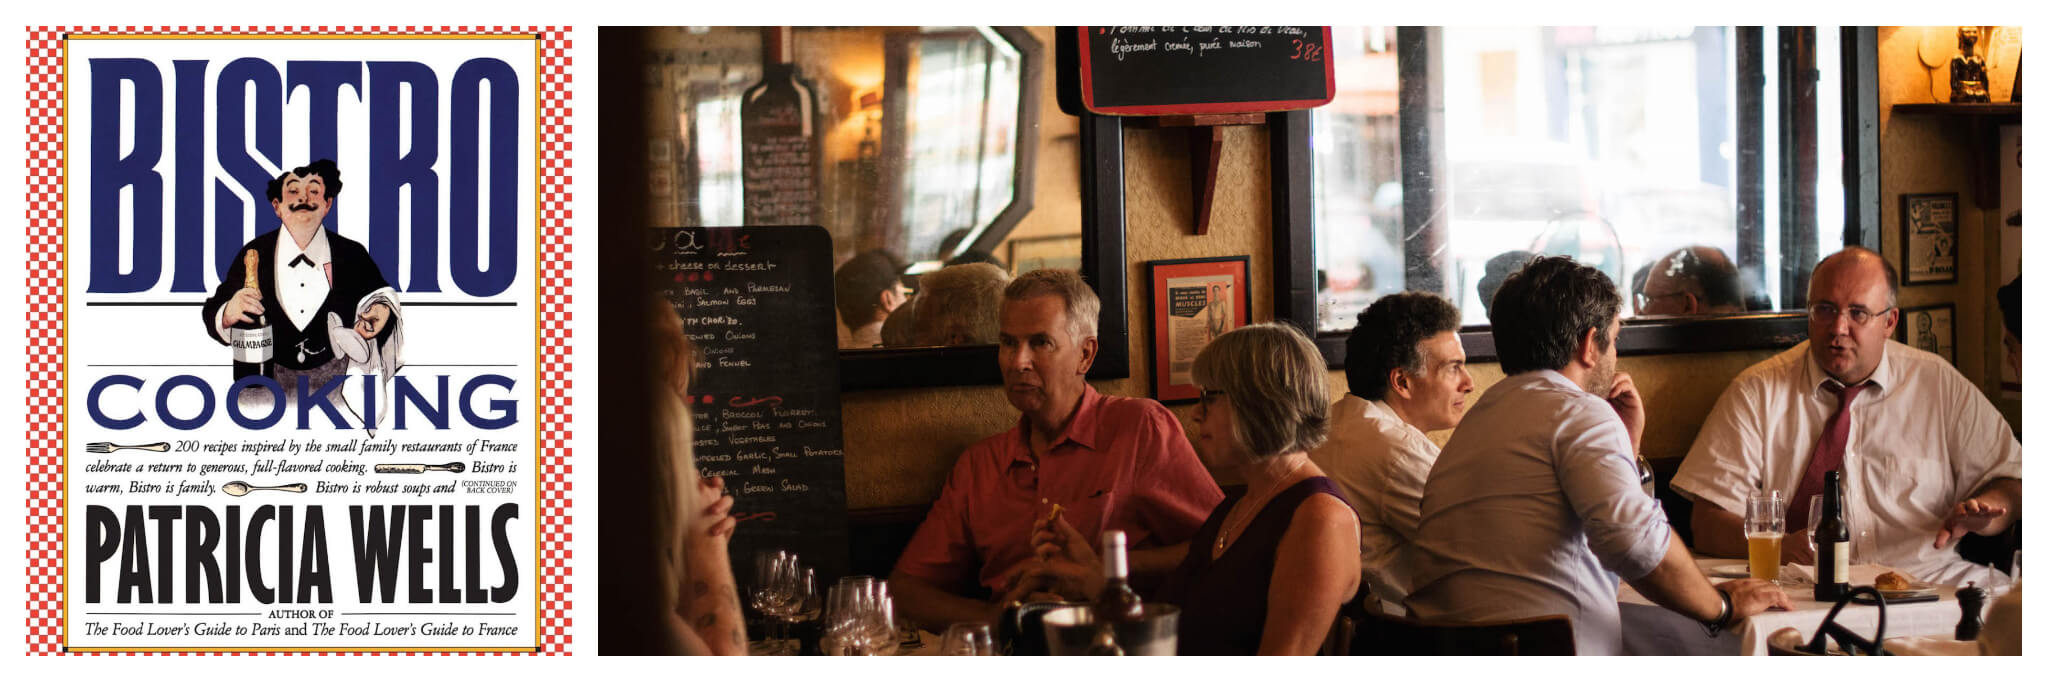 Left: The cover of Patricia Wells' cookbook, Bistro Cooking, Right: Diners are packed into a bistro at lunchtime in Paris, drinking and chatting before their meals (photo taken before COVID-19)